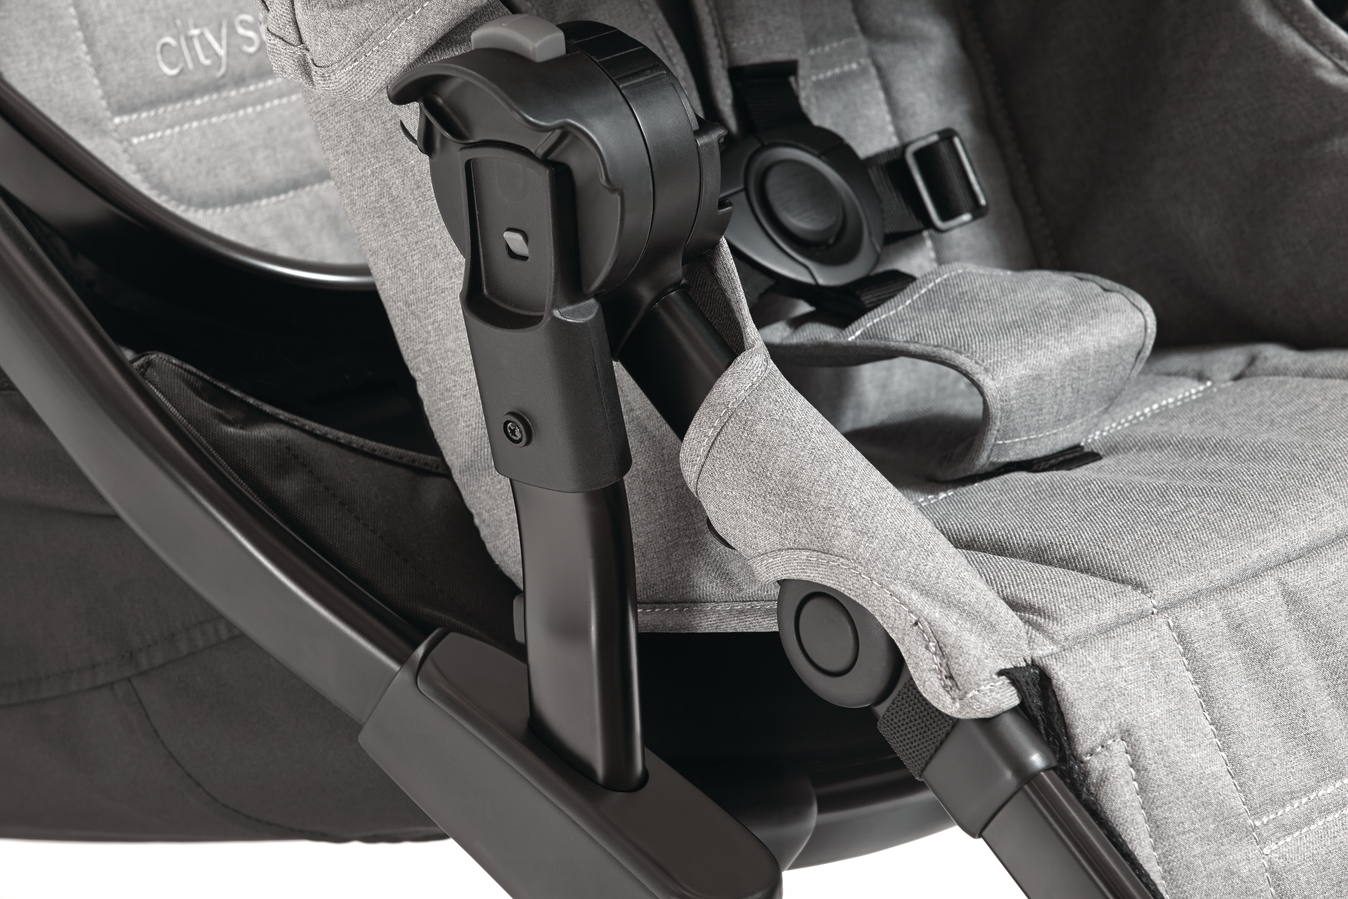 Second Seat Adapter City Select LUX - BabyJogger®